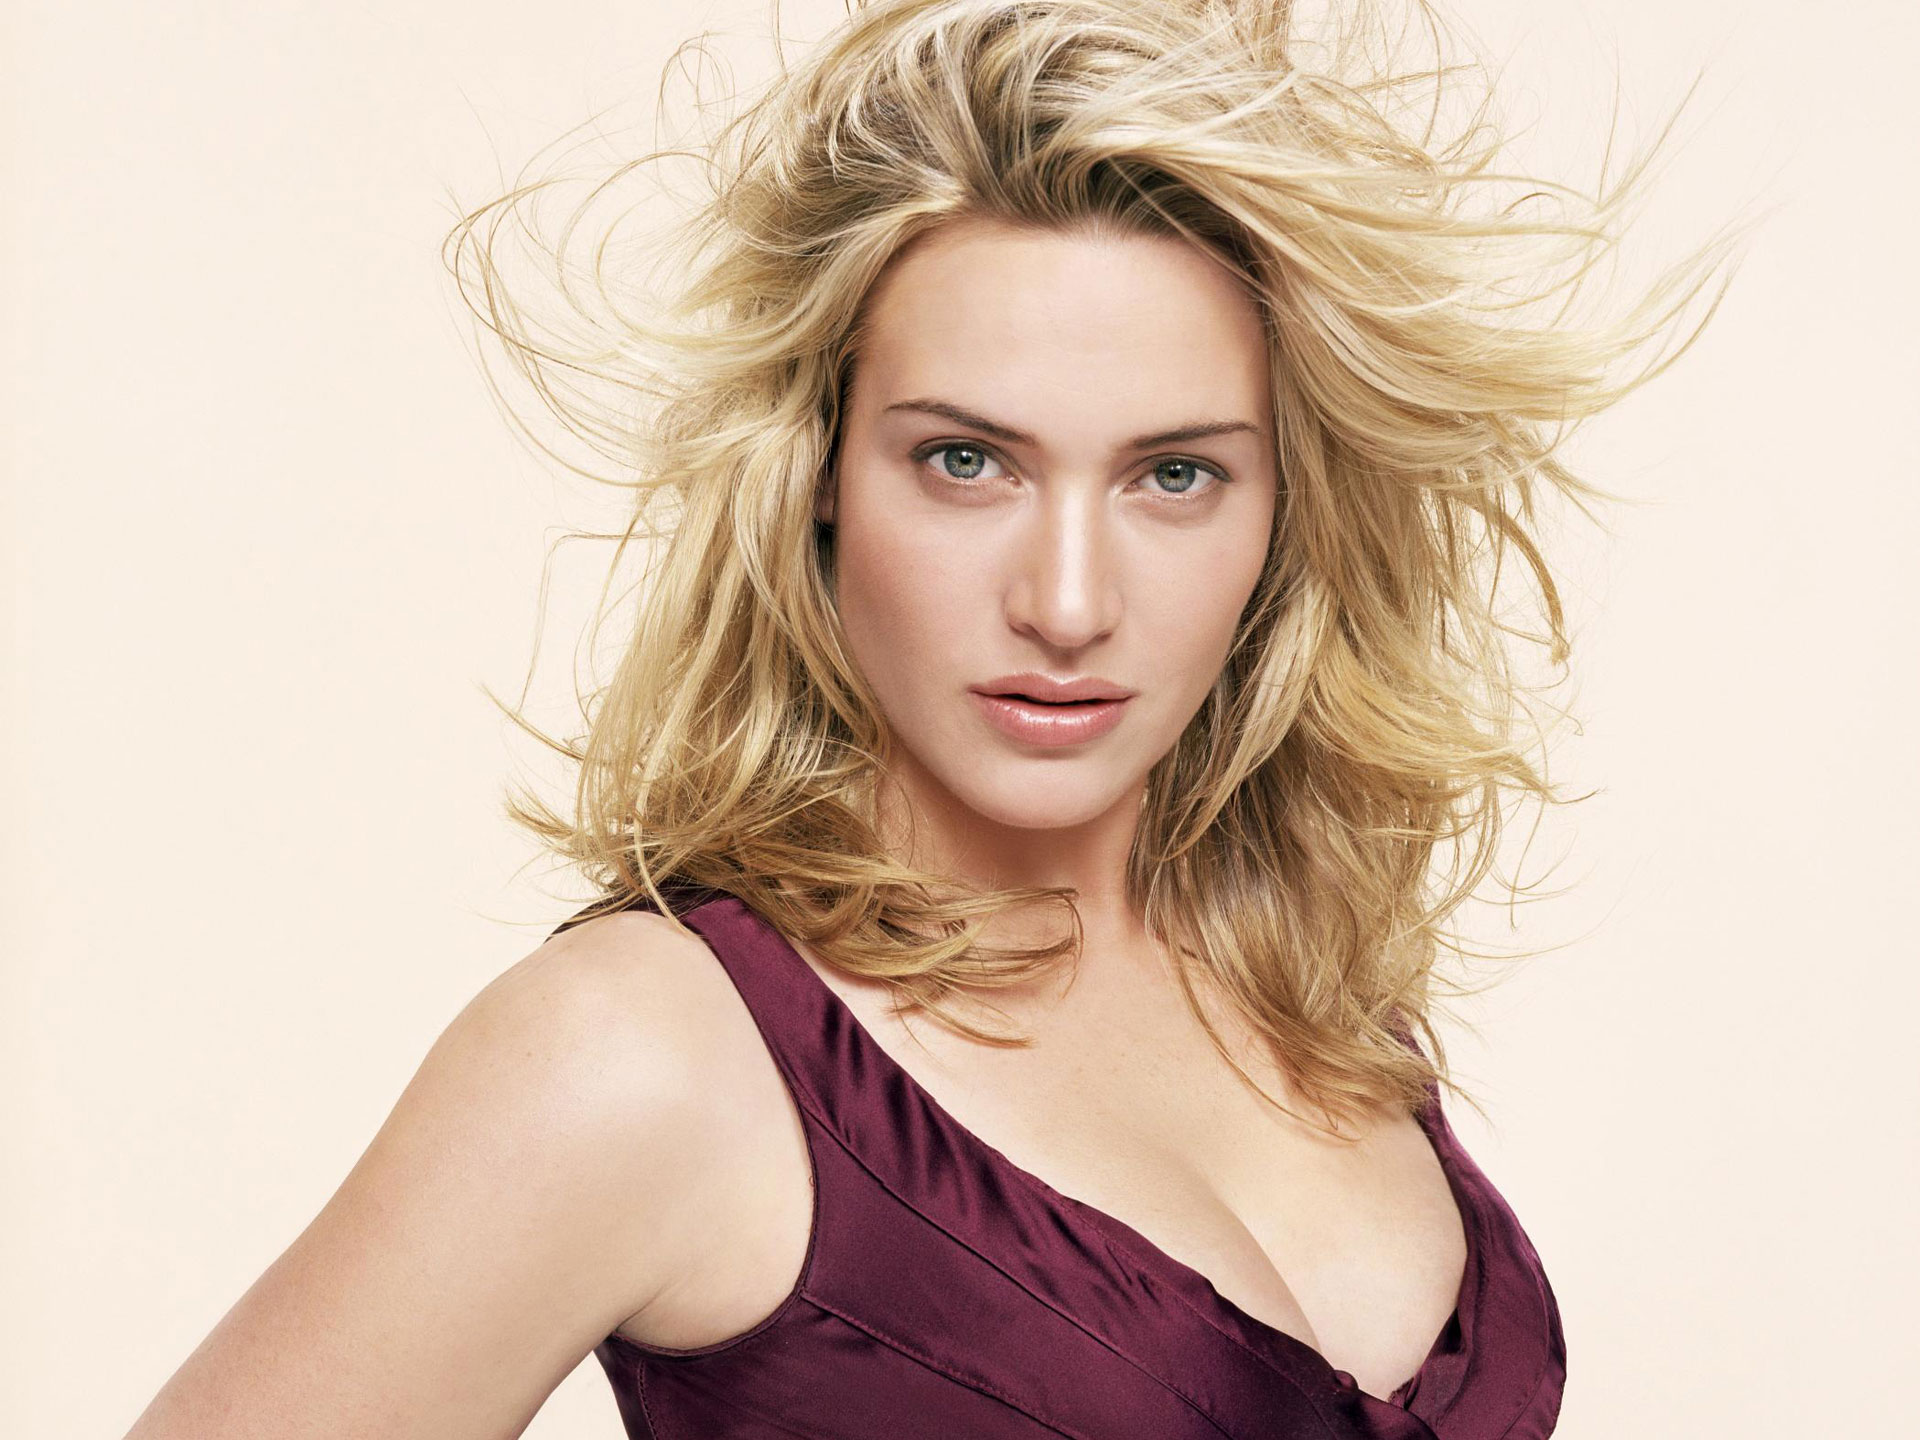 Kate Winslet Esquire Magazine 243.22 Kb